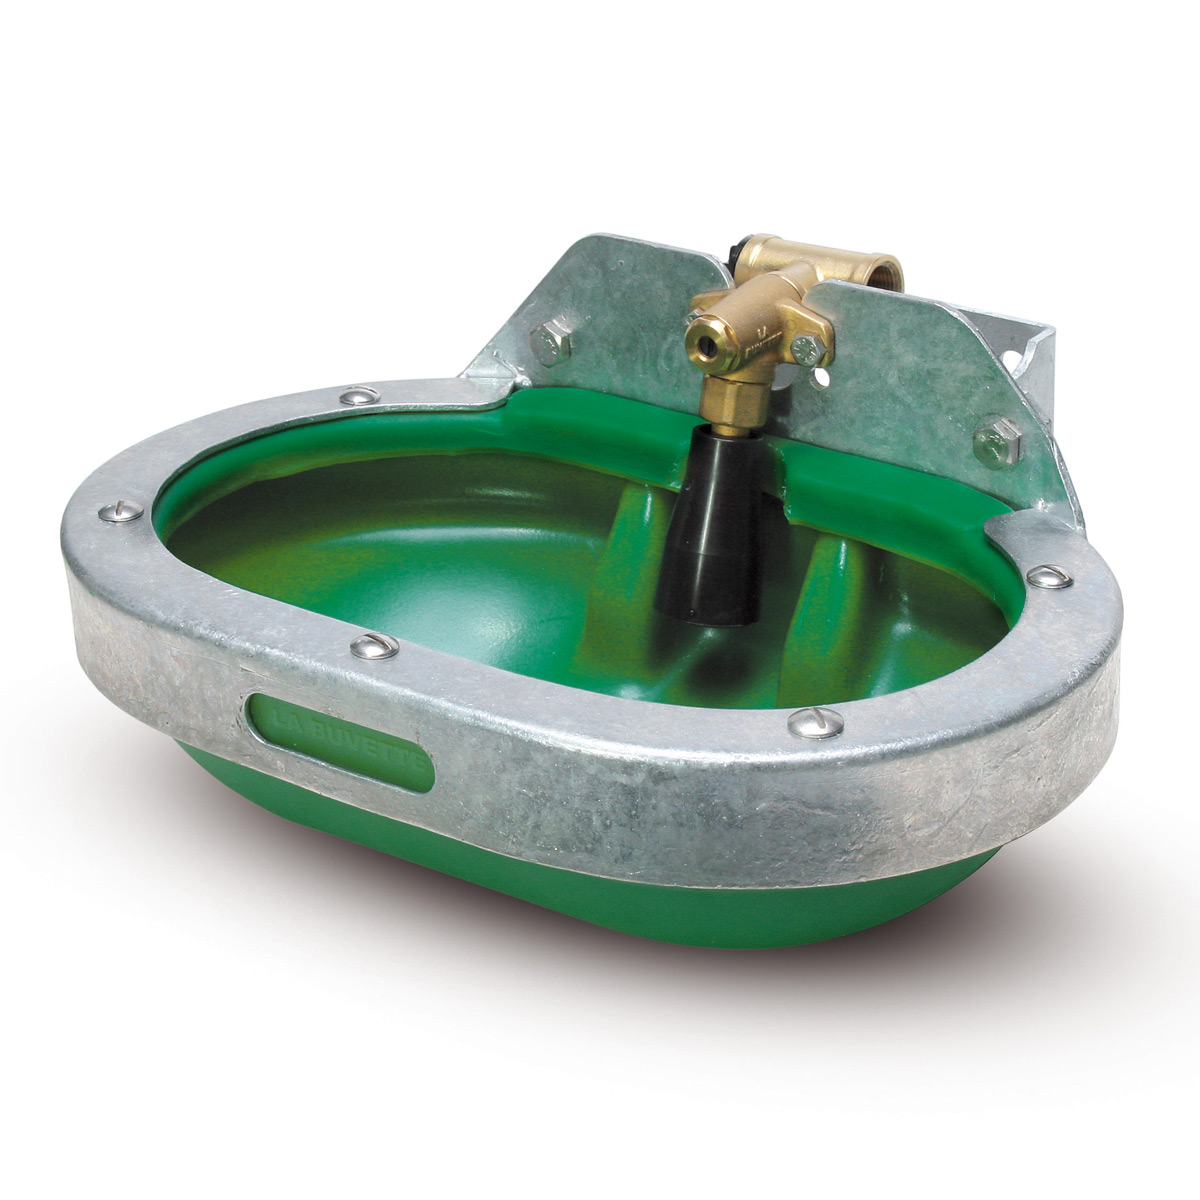 F40 Non-spill HDPE drinker with full metal protection